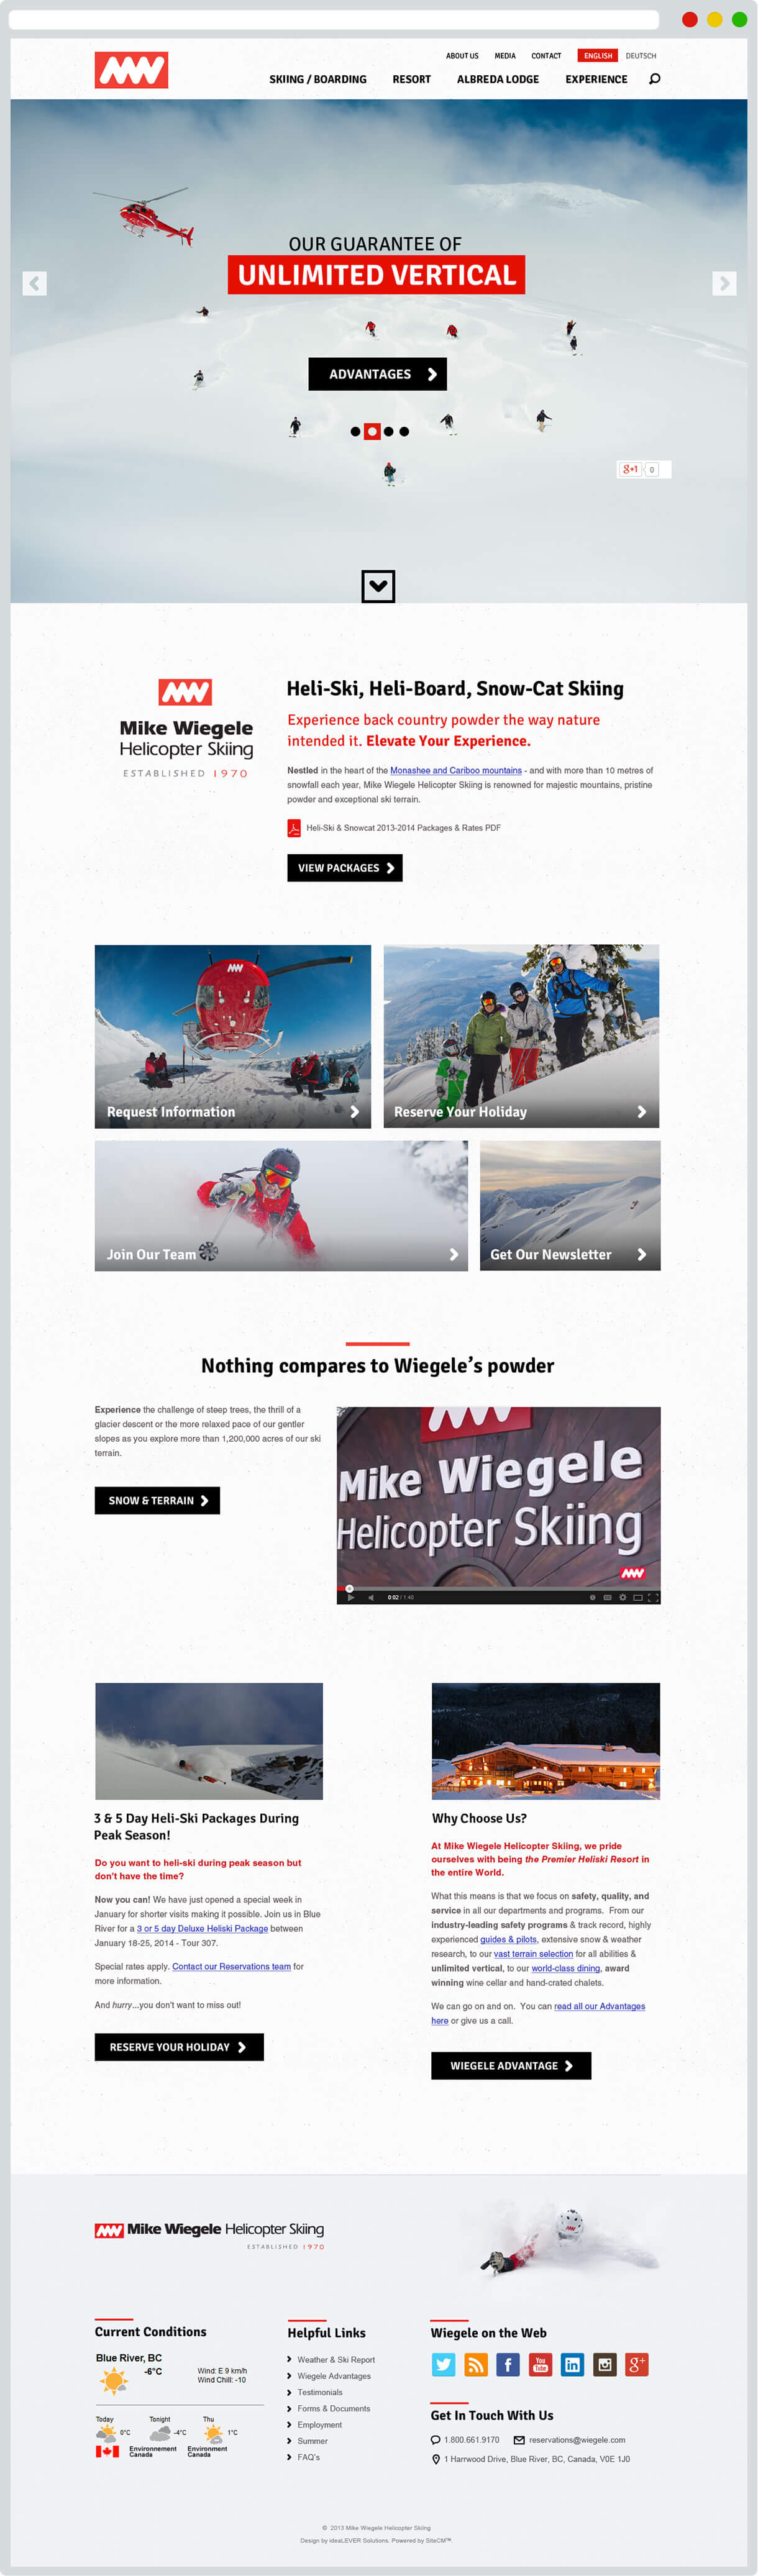 Wiegele.com homepage screenshot